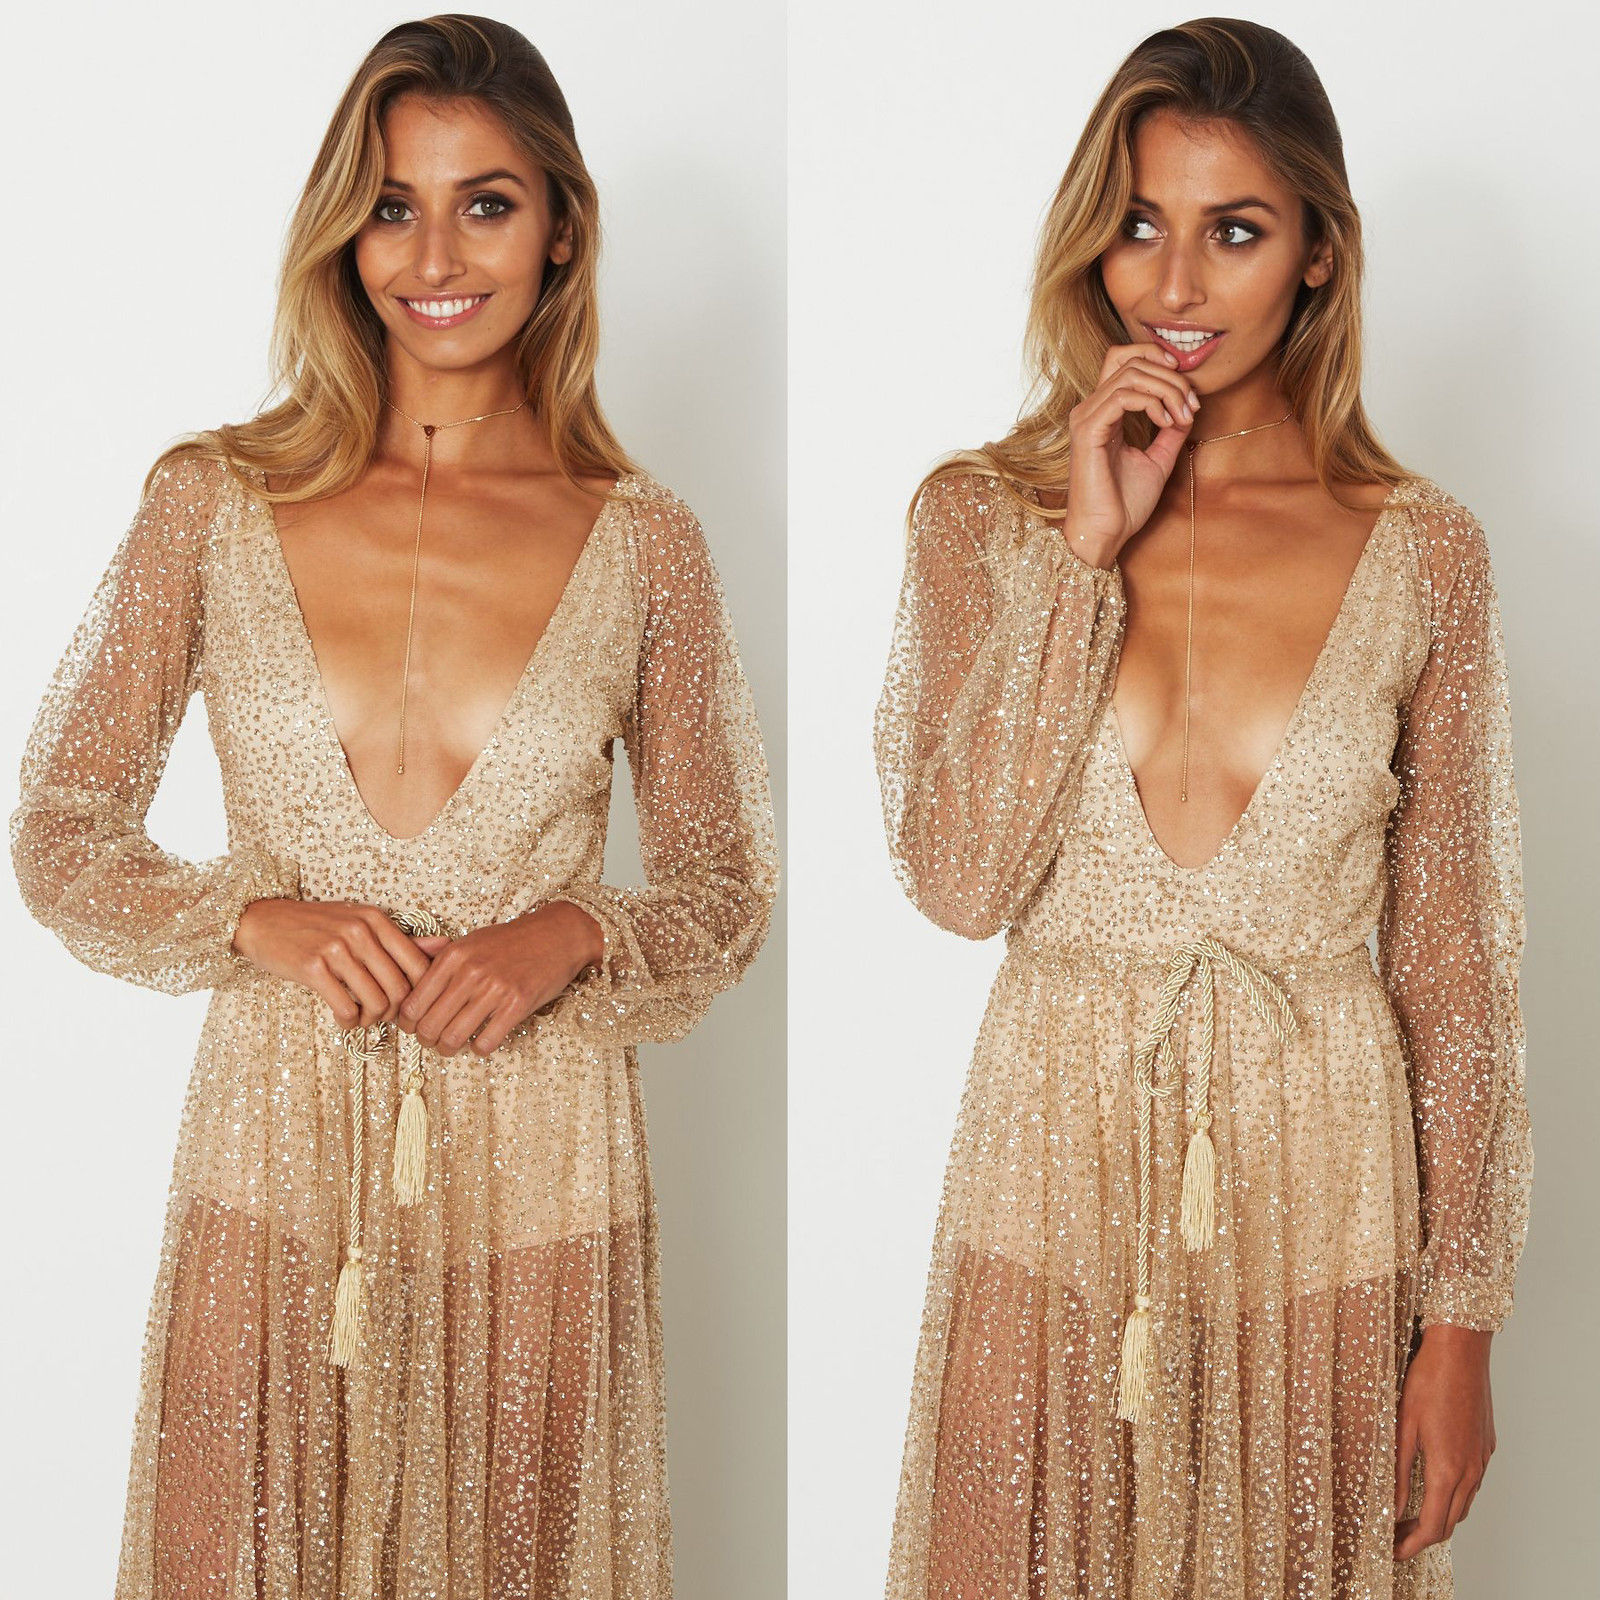 Long Sleeve Gold Sequin Dress Women Sparkly Glitter Party Maxi Dresses Sexy  Plunge Deep V Neck Backless Beach Dress a84c8f511